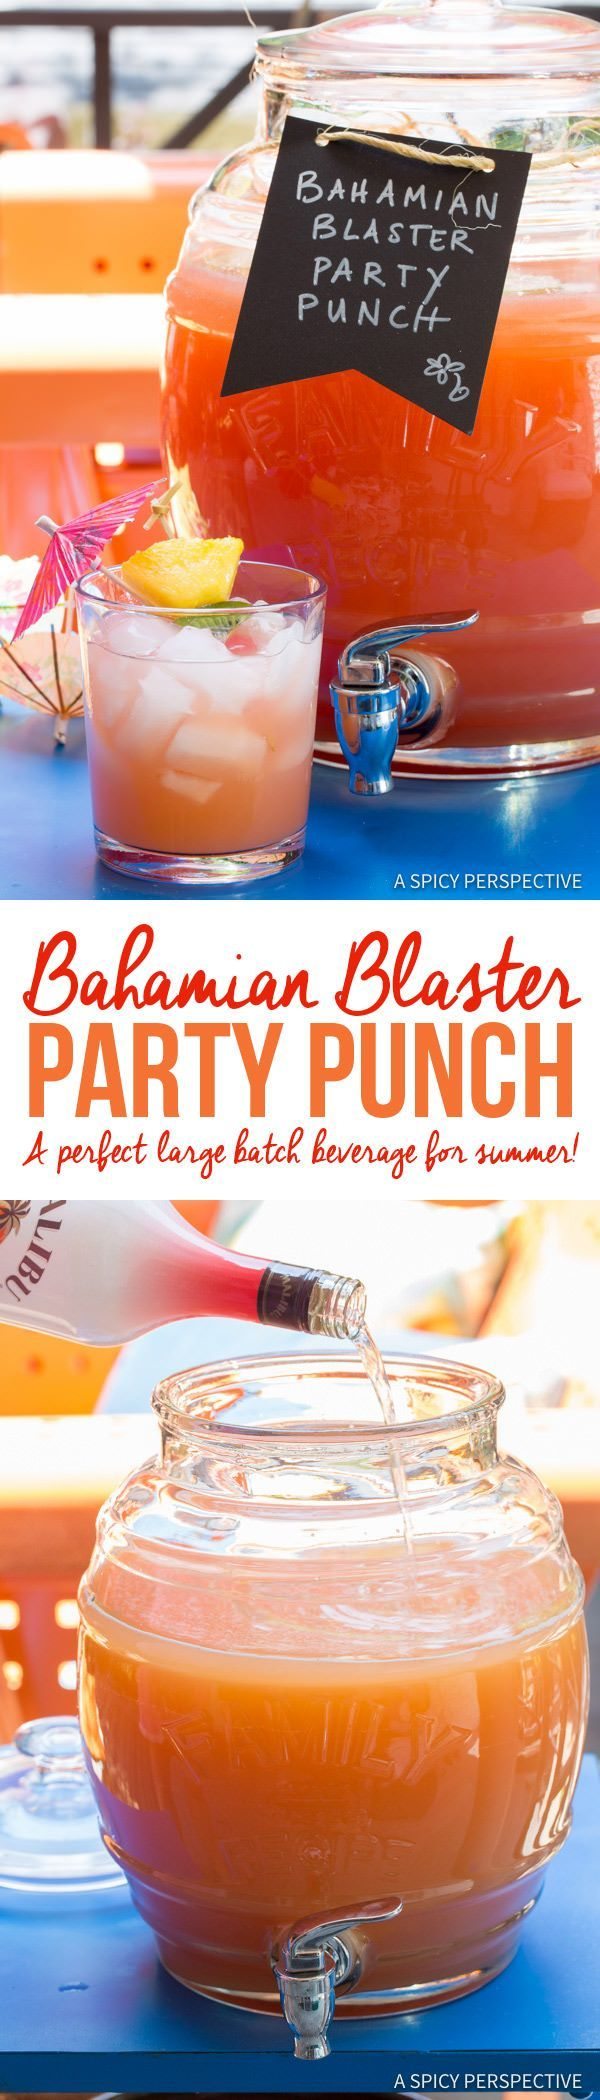 Summer Alcoholic Punch Recipes: 25+ Best Ideas About Summer Alcoholic Punch On Pinterest